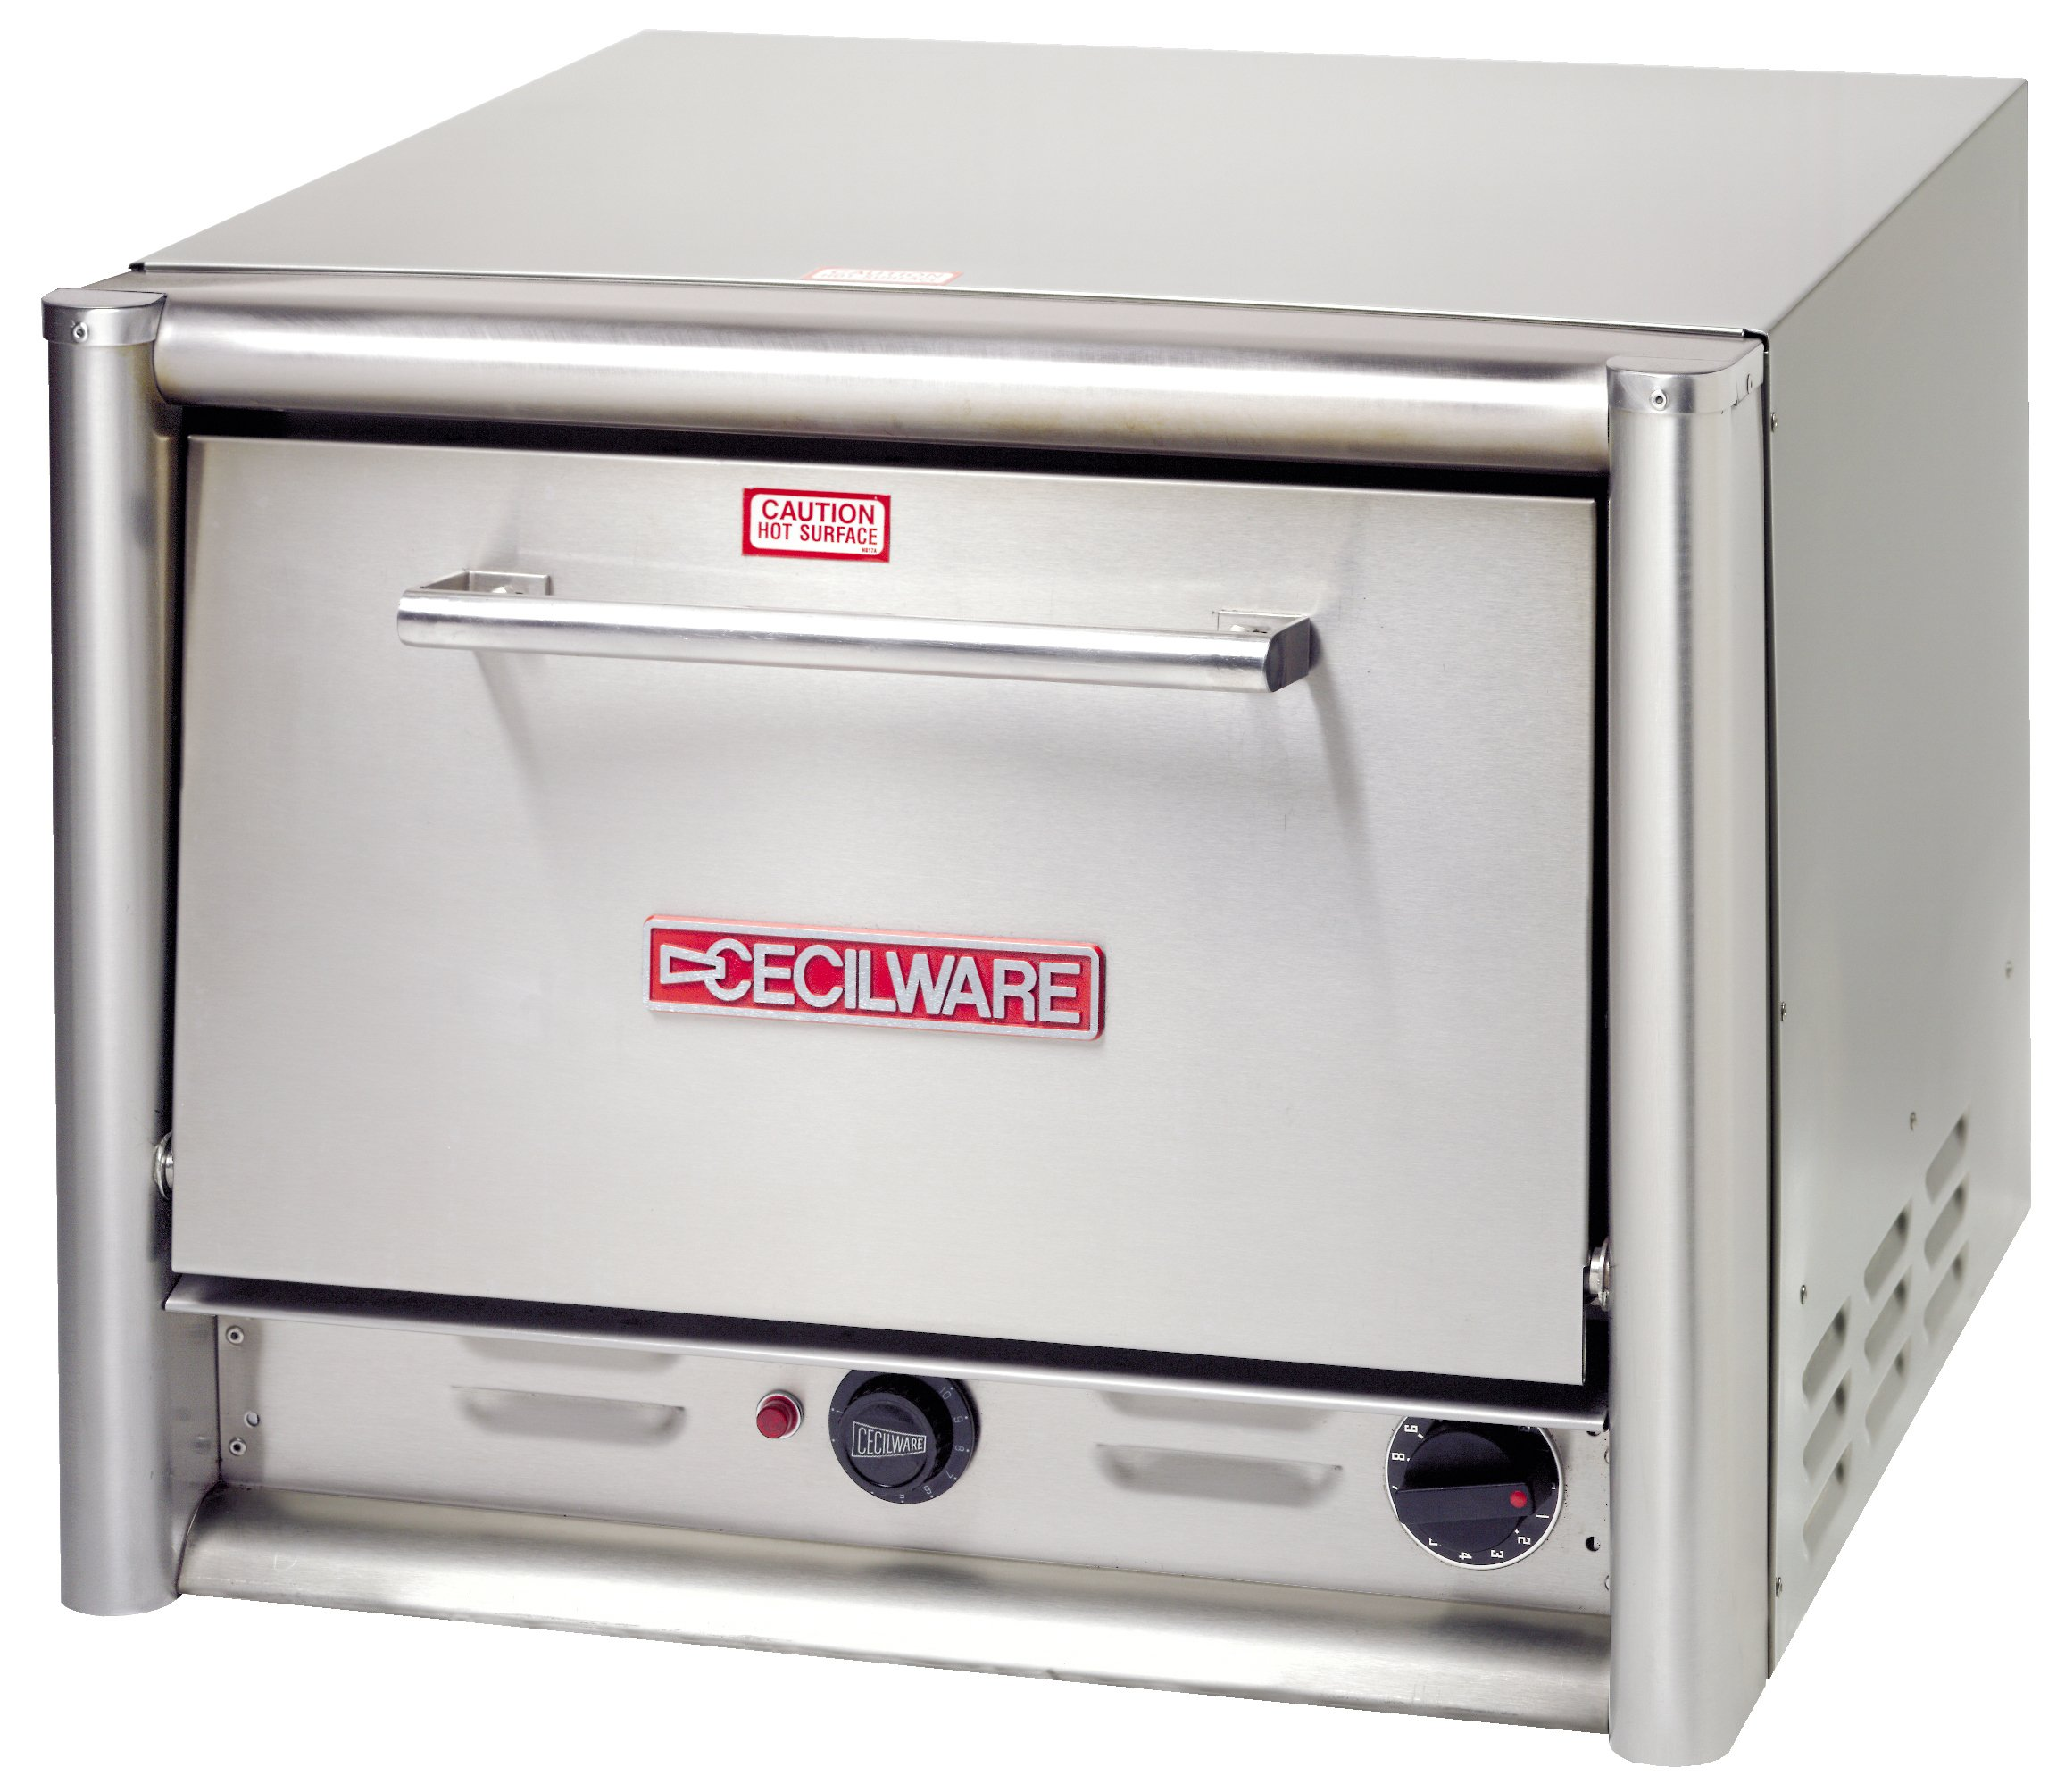 Grindmaster Cecilware PO18-220 Countertop Pizza Oven with 2 Shelves, 23.5-Inch, Stainless Steel by Lee Global Imports and Consulting, Inc.